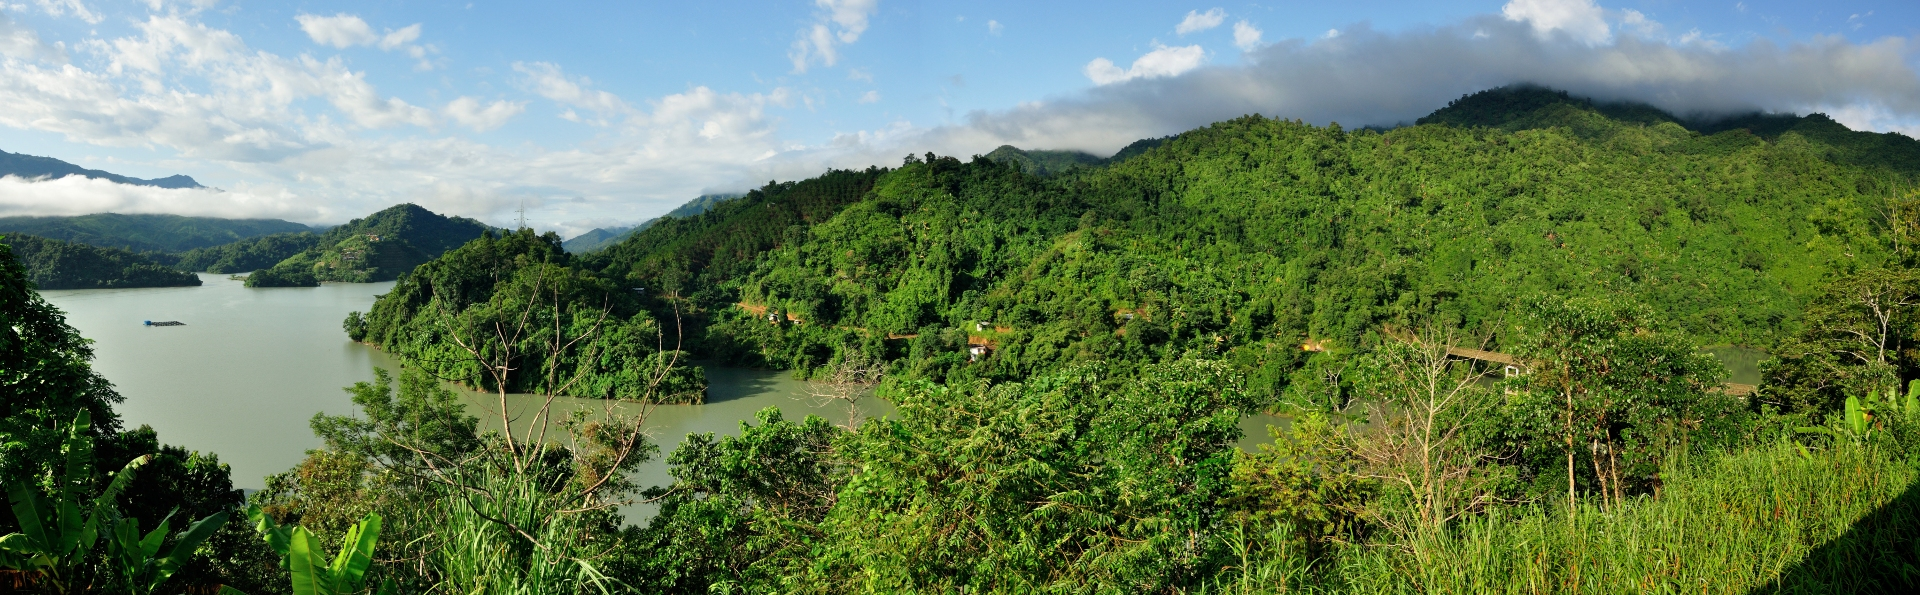 A panoramic view of the Doyang reservoir, which was built in the year 2000, across the river Doyang, a tributary of the mighty Brahmaputra. Amur falcons roost on trees in the surrounding hills. Photo: Seshadri KS